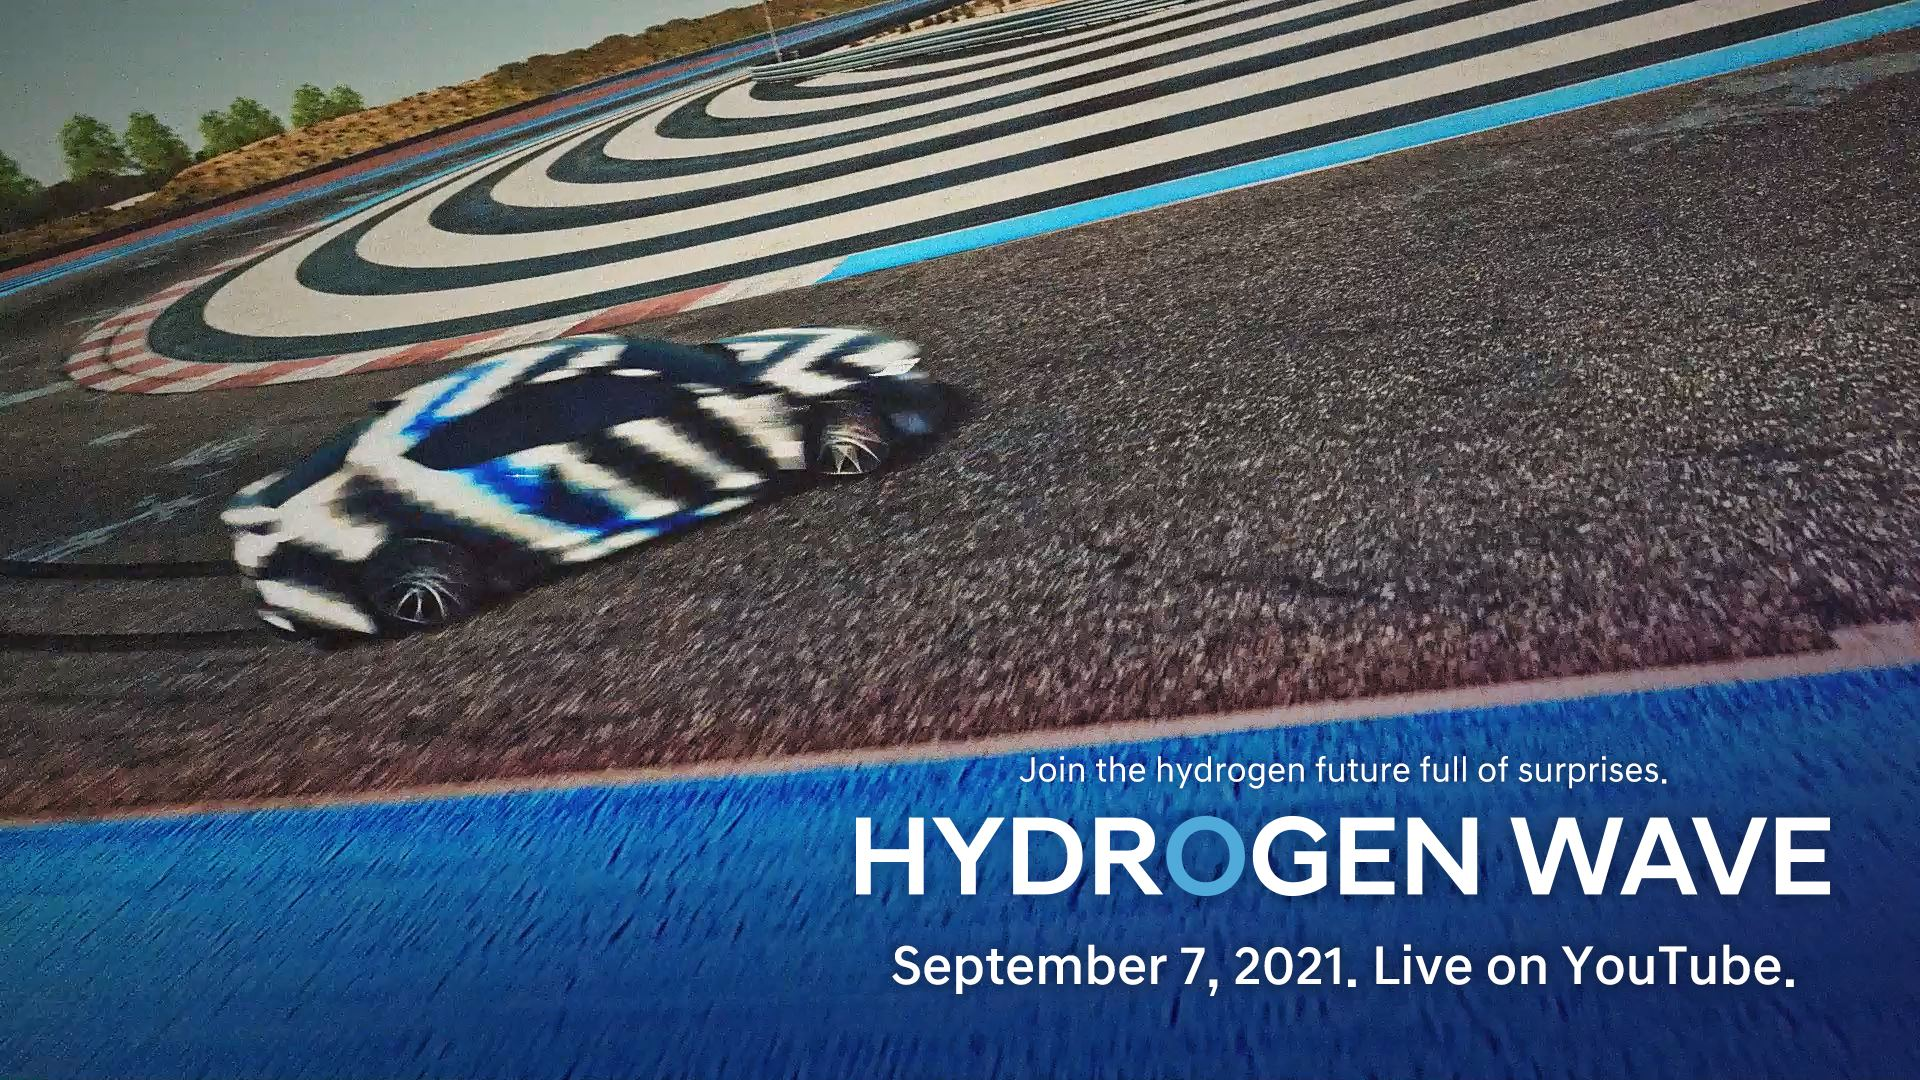 Hyundai Motor Group to Unveil its Future Vision for Hydrogen Society at the 'Hydrogen Wave' Global Forum in September - Image 3